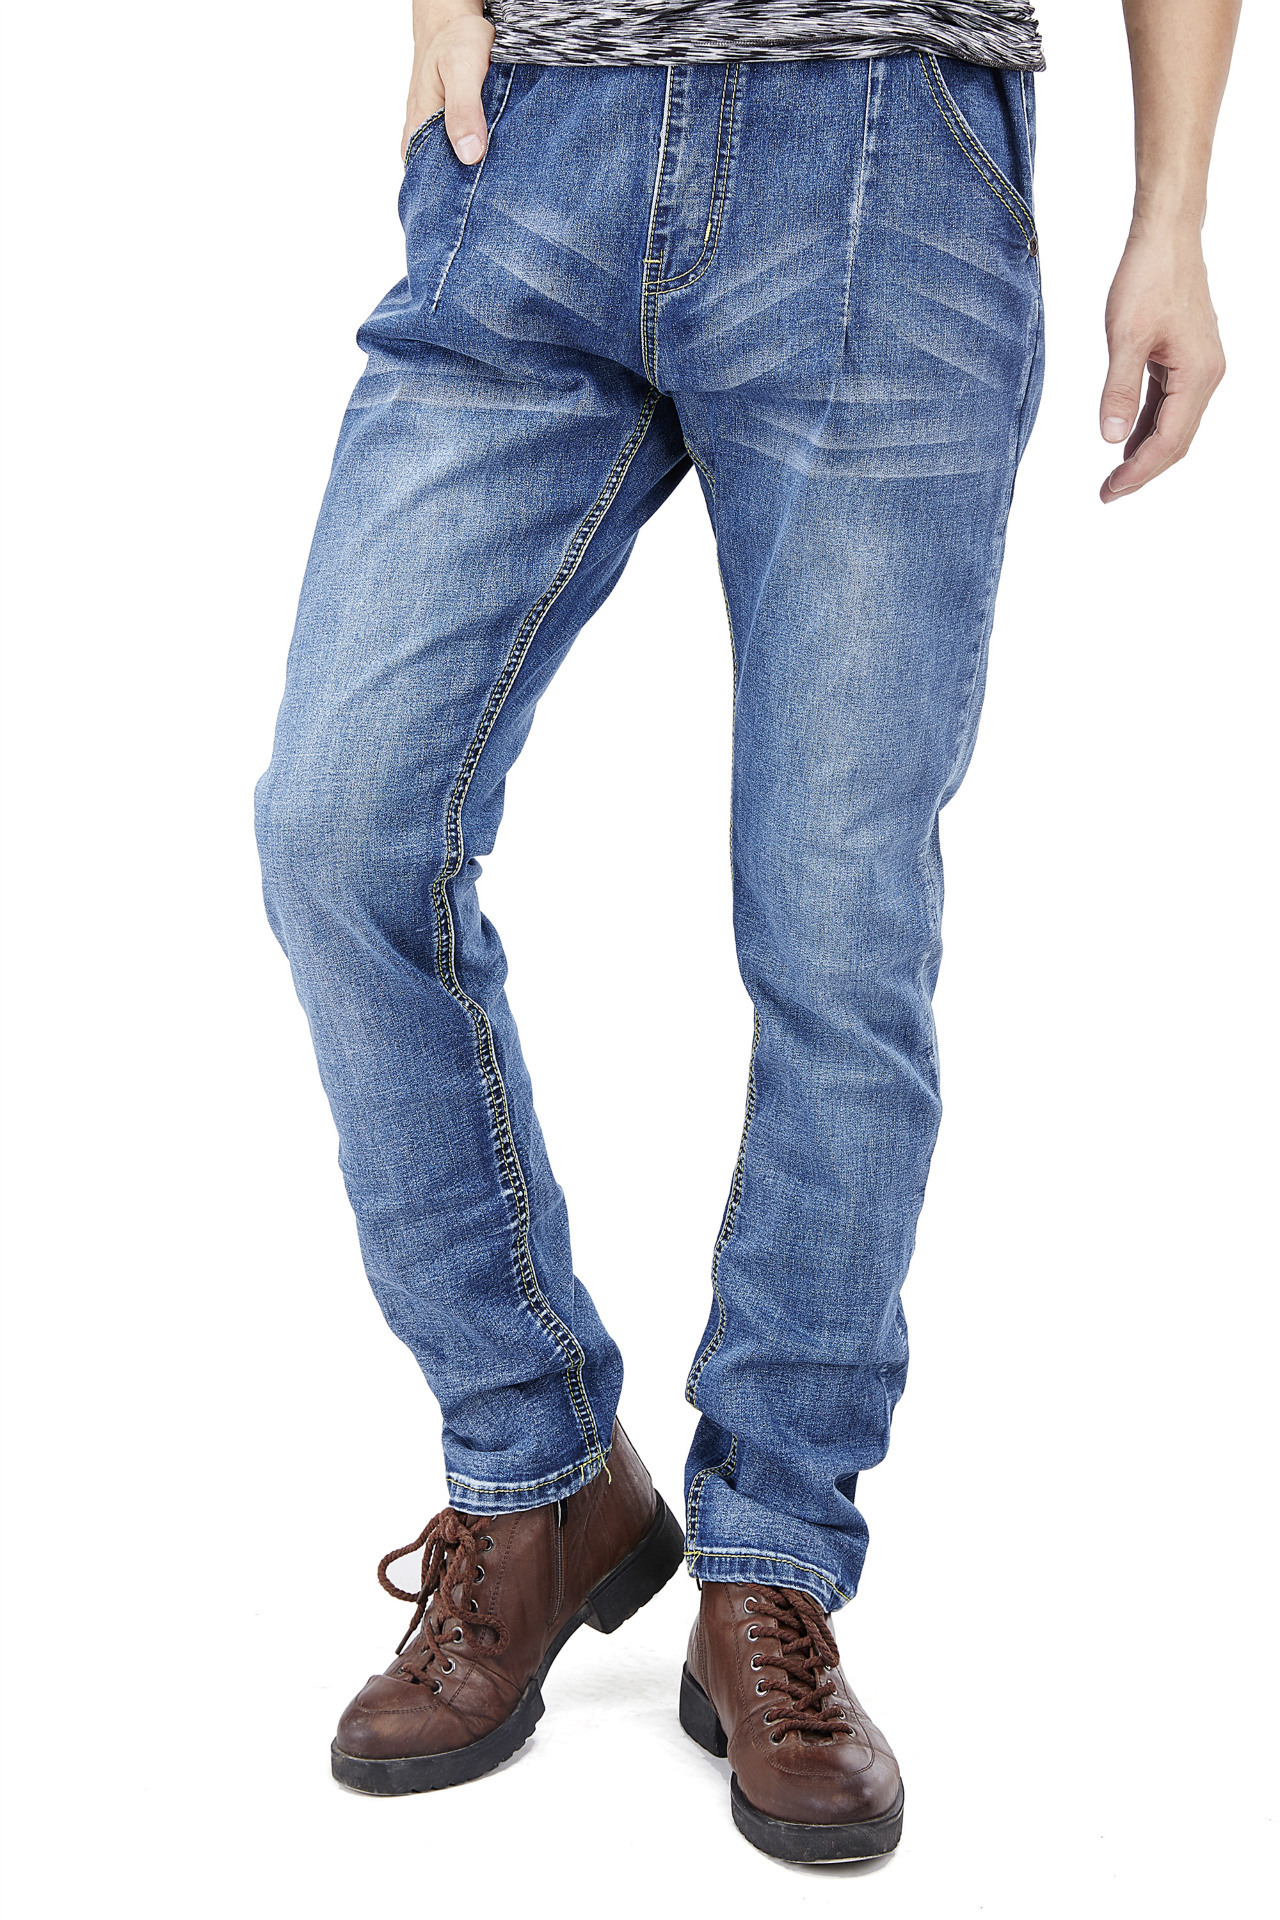 ФОТО 2016 Mens Blue Jeans Spring Summer Mid Waist Straight Jeans Men Brand Clothing Casual Denim Men's Jeans Big Size 30-46